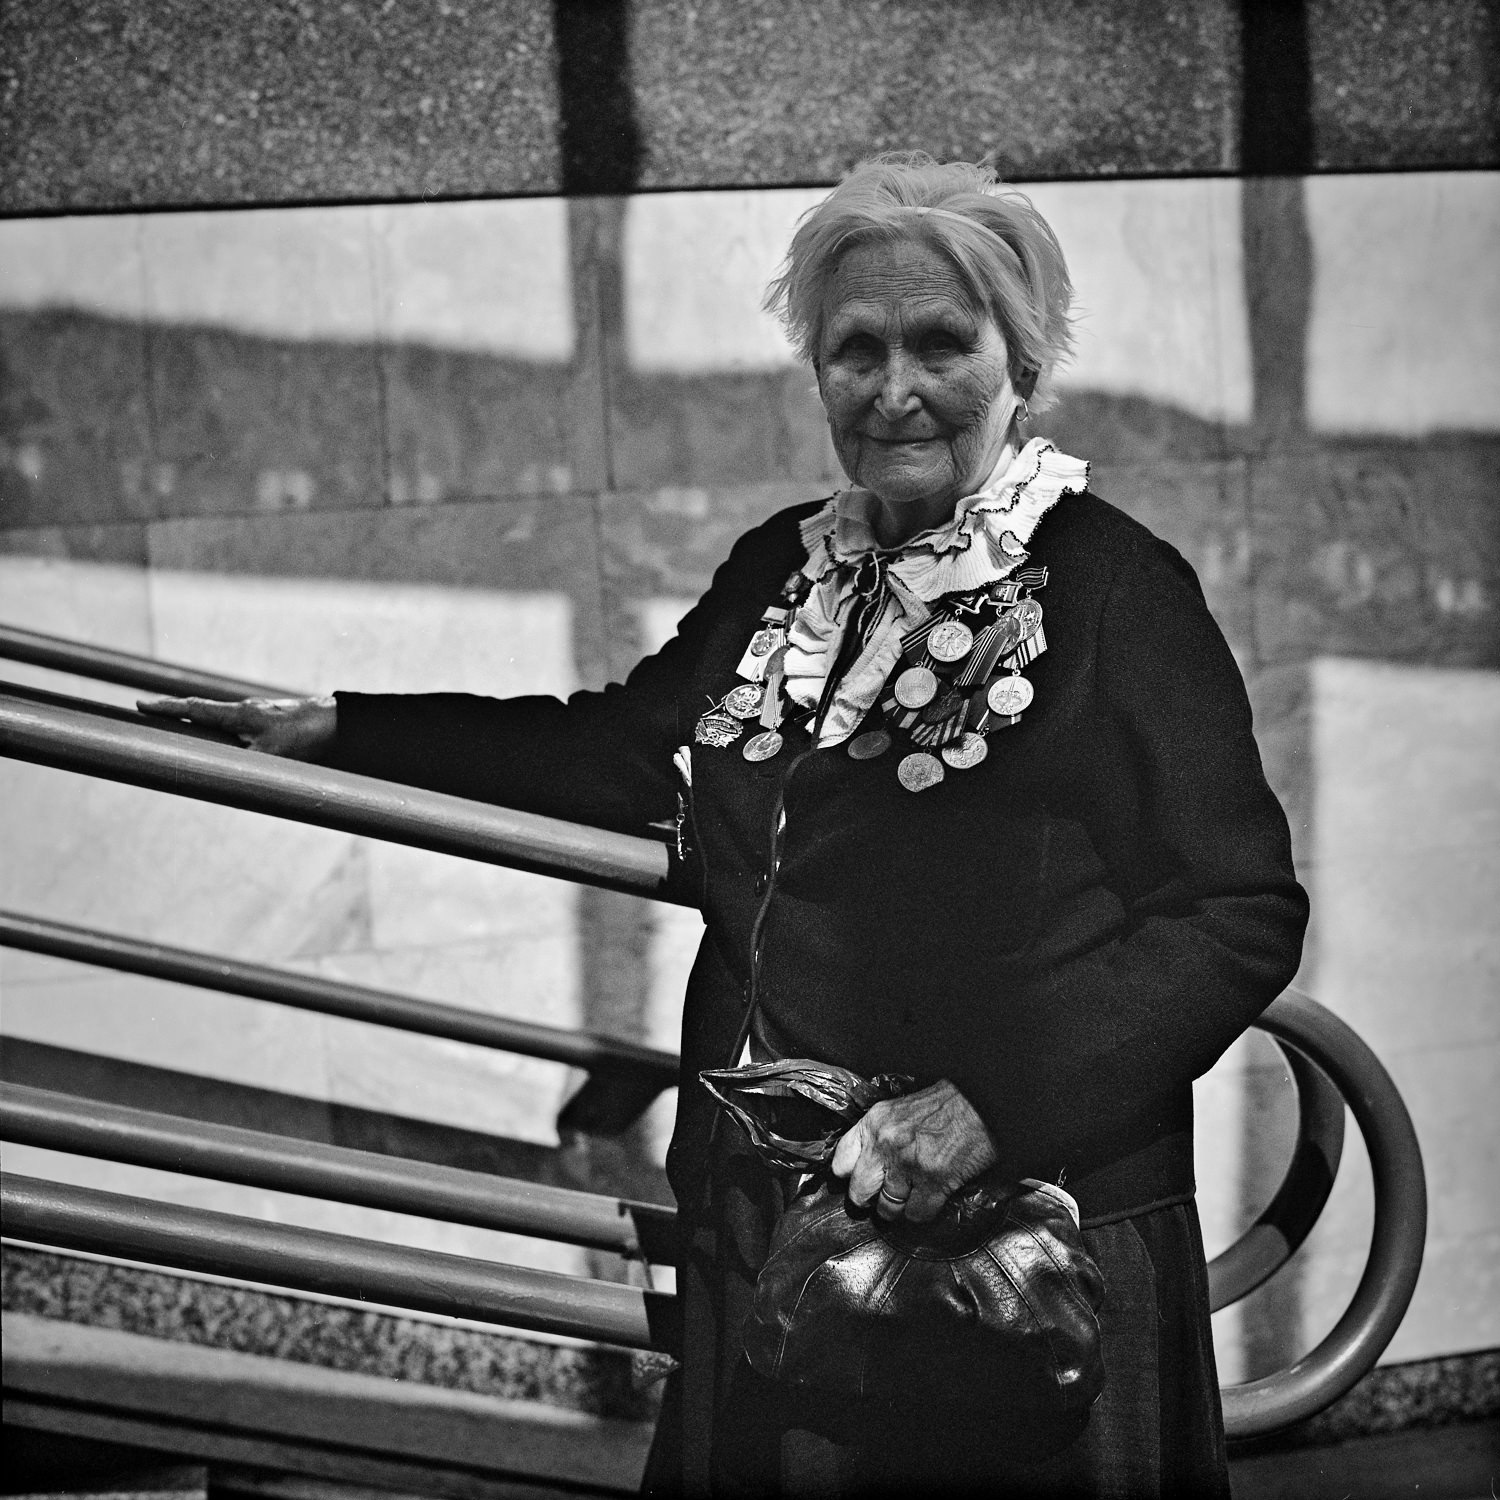 Portrait of elderly woman veteran of the Great Patriotic War standing in the underground passage taken on medium format camera and black-and-white film